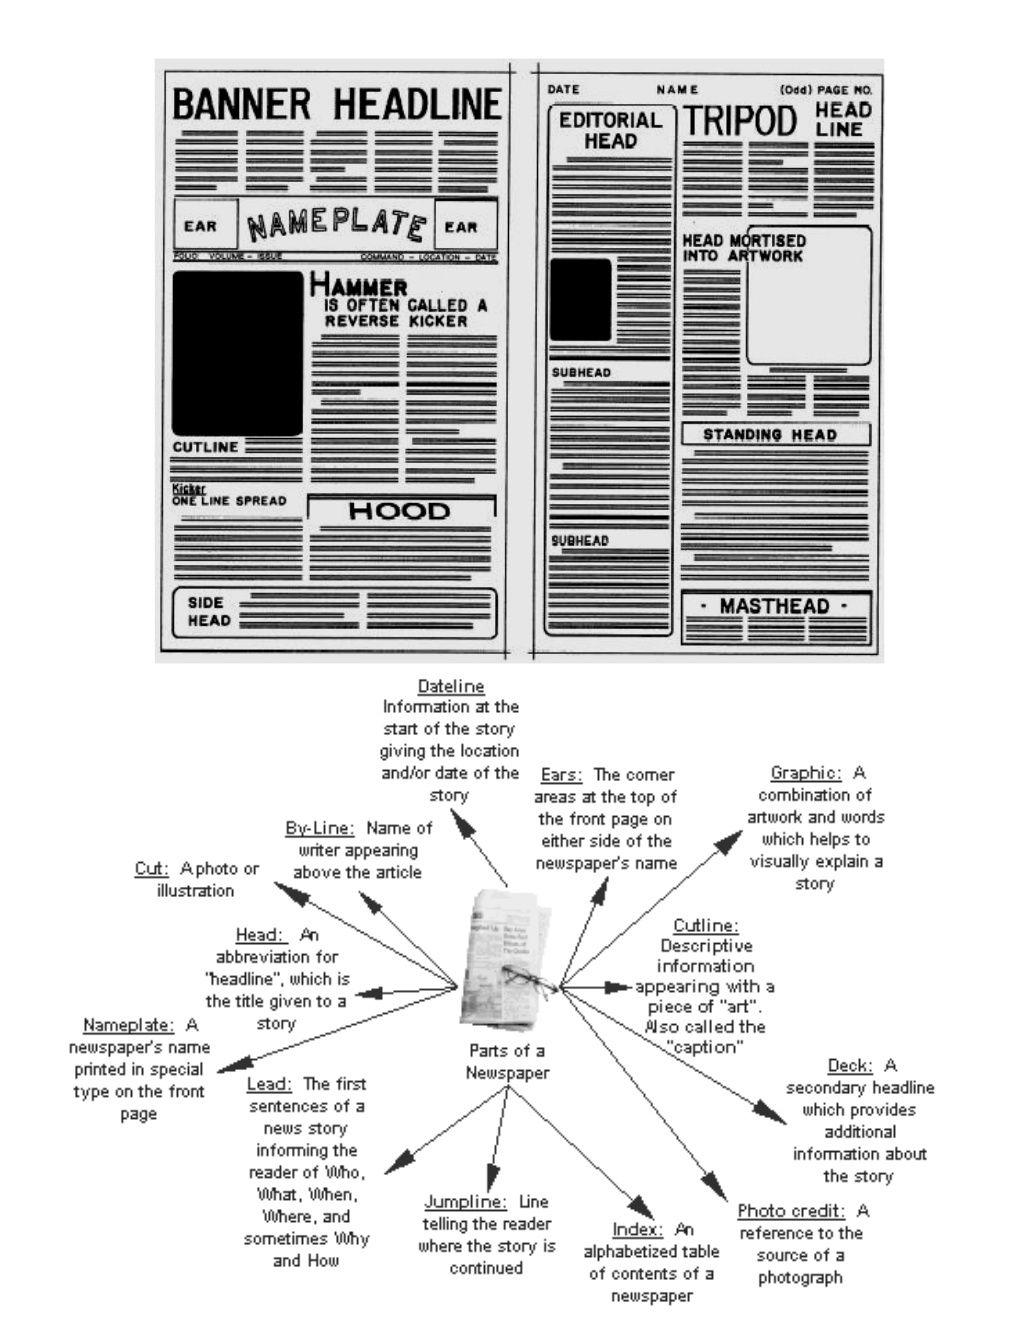 Parts Of A Newspaper By Methlal Via Slideshare